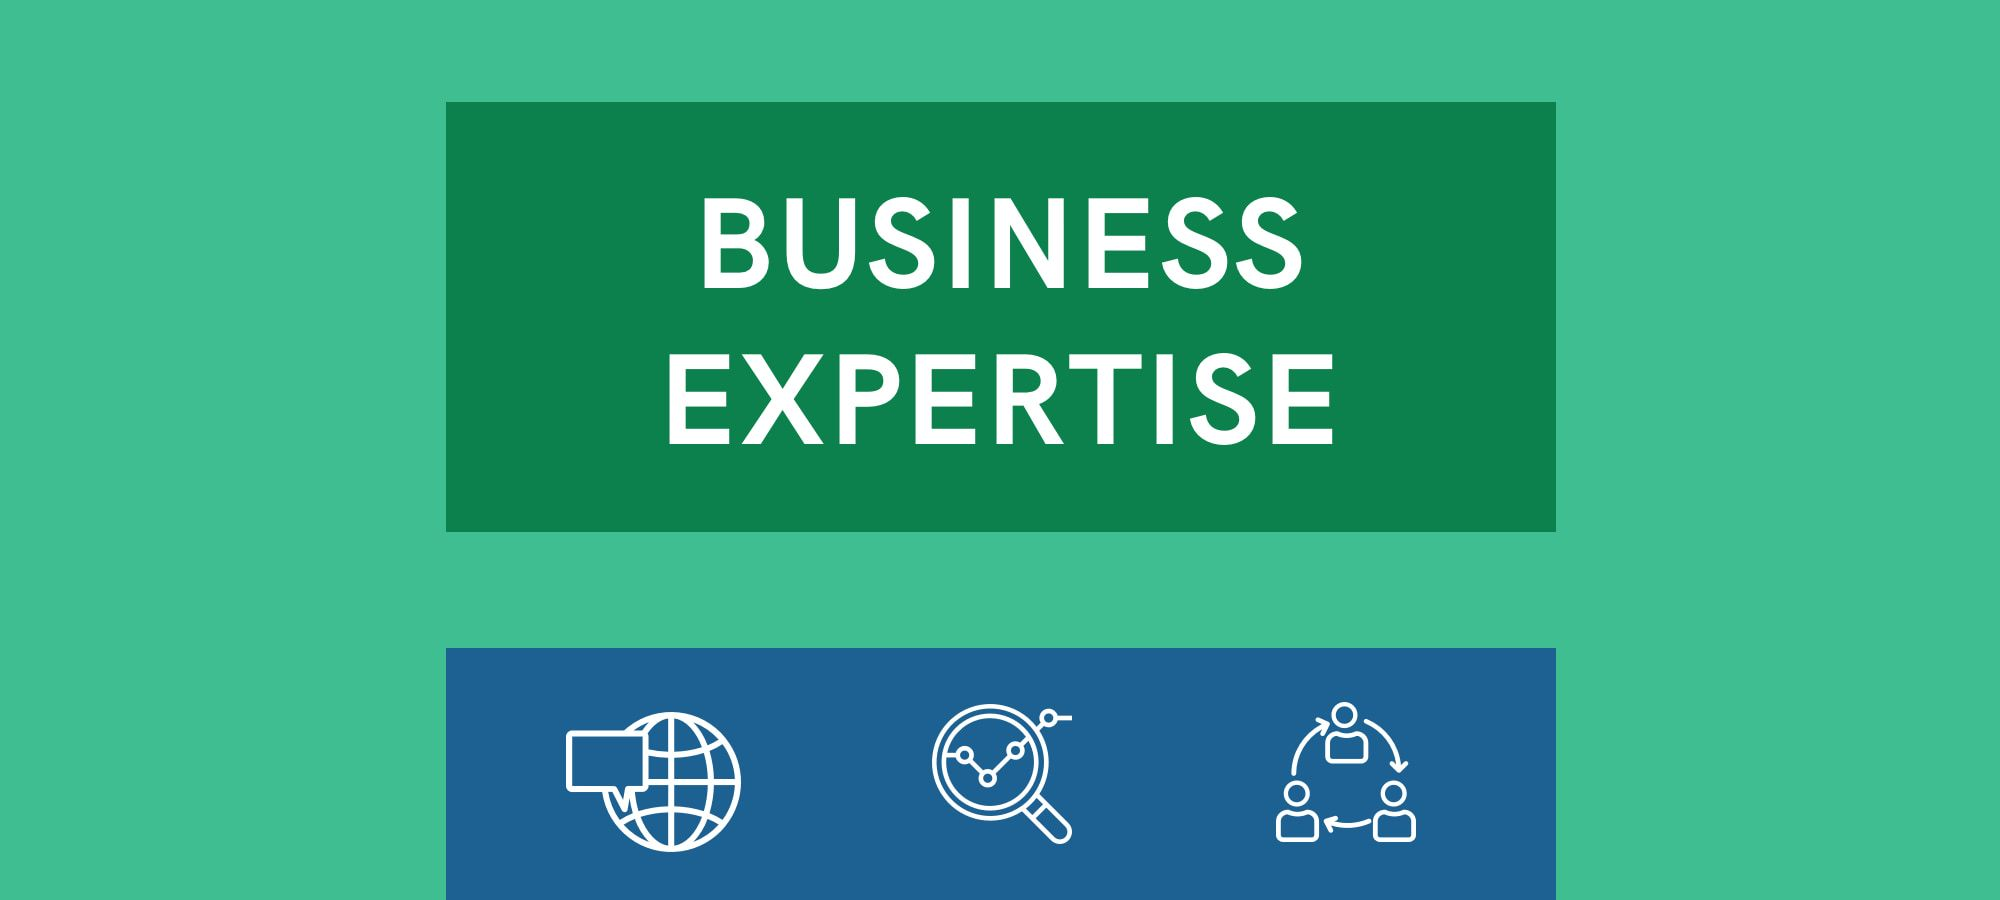 business-expertise-2muchcoffee-Outsourcing-Company